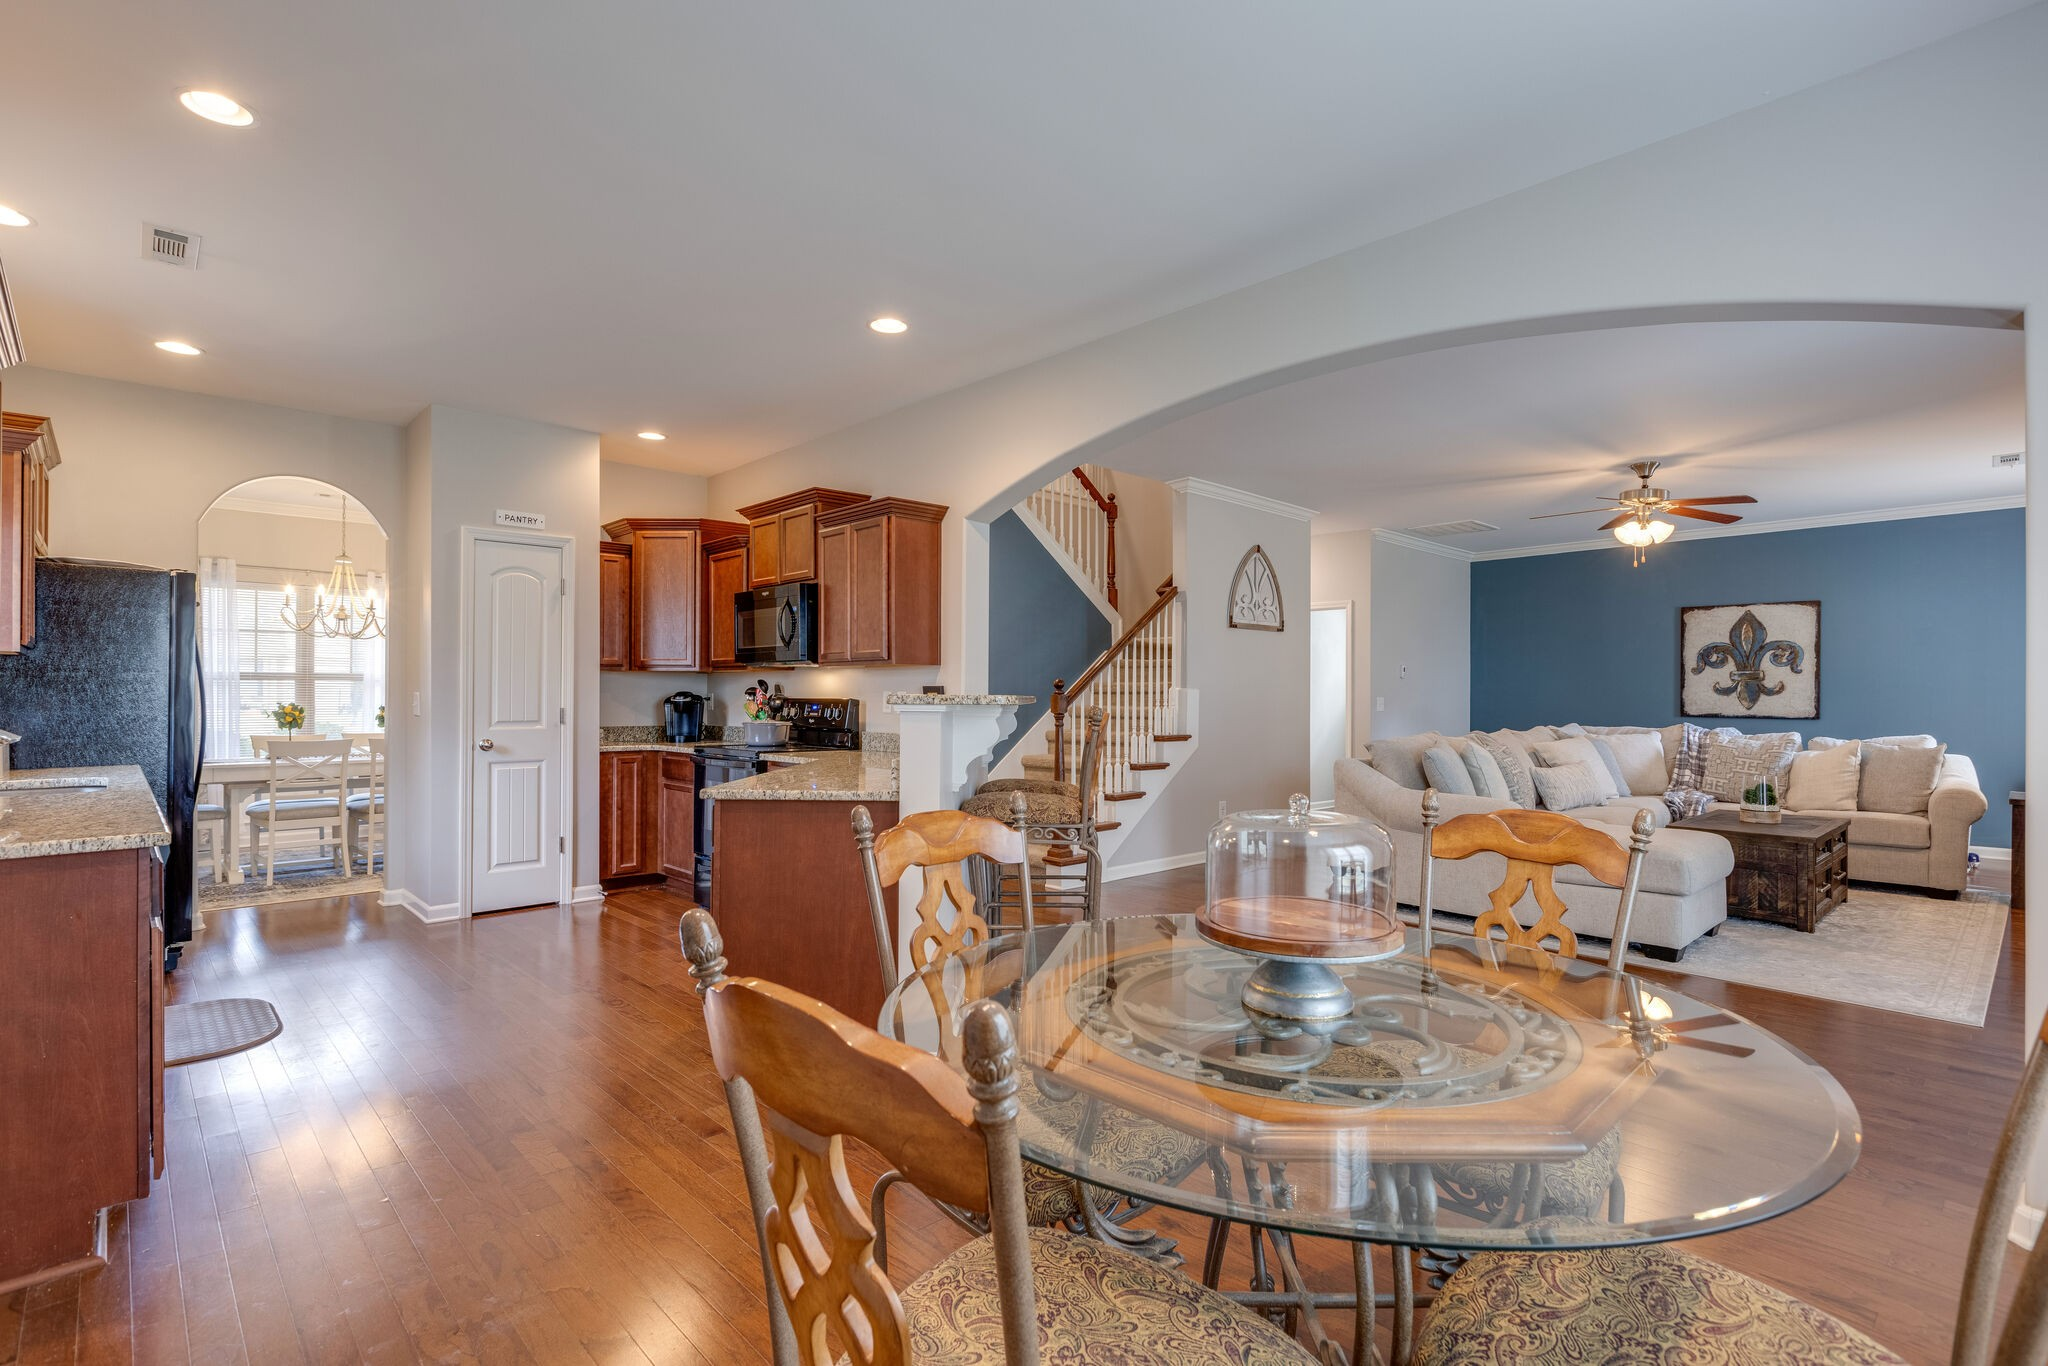 Rare 4 bedroom, 2.5 bath culdesac home!  Hardwoods on main level, granite counters, fireplace, cozy covered patio, neutral paint plus a bonus room!  So much space to spread out!  Lots of natural light, easy access to interstates...this cutie is ready to move in!  Come See!